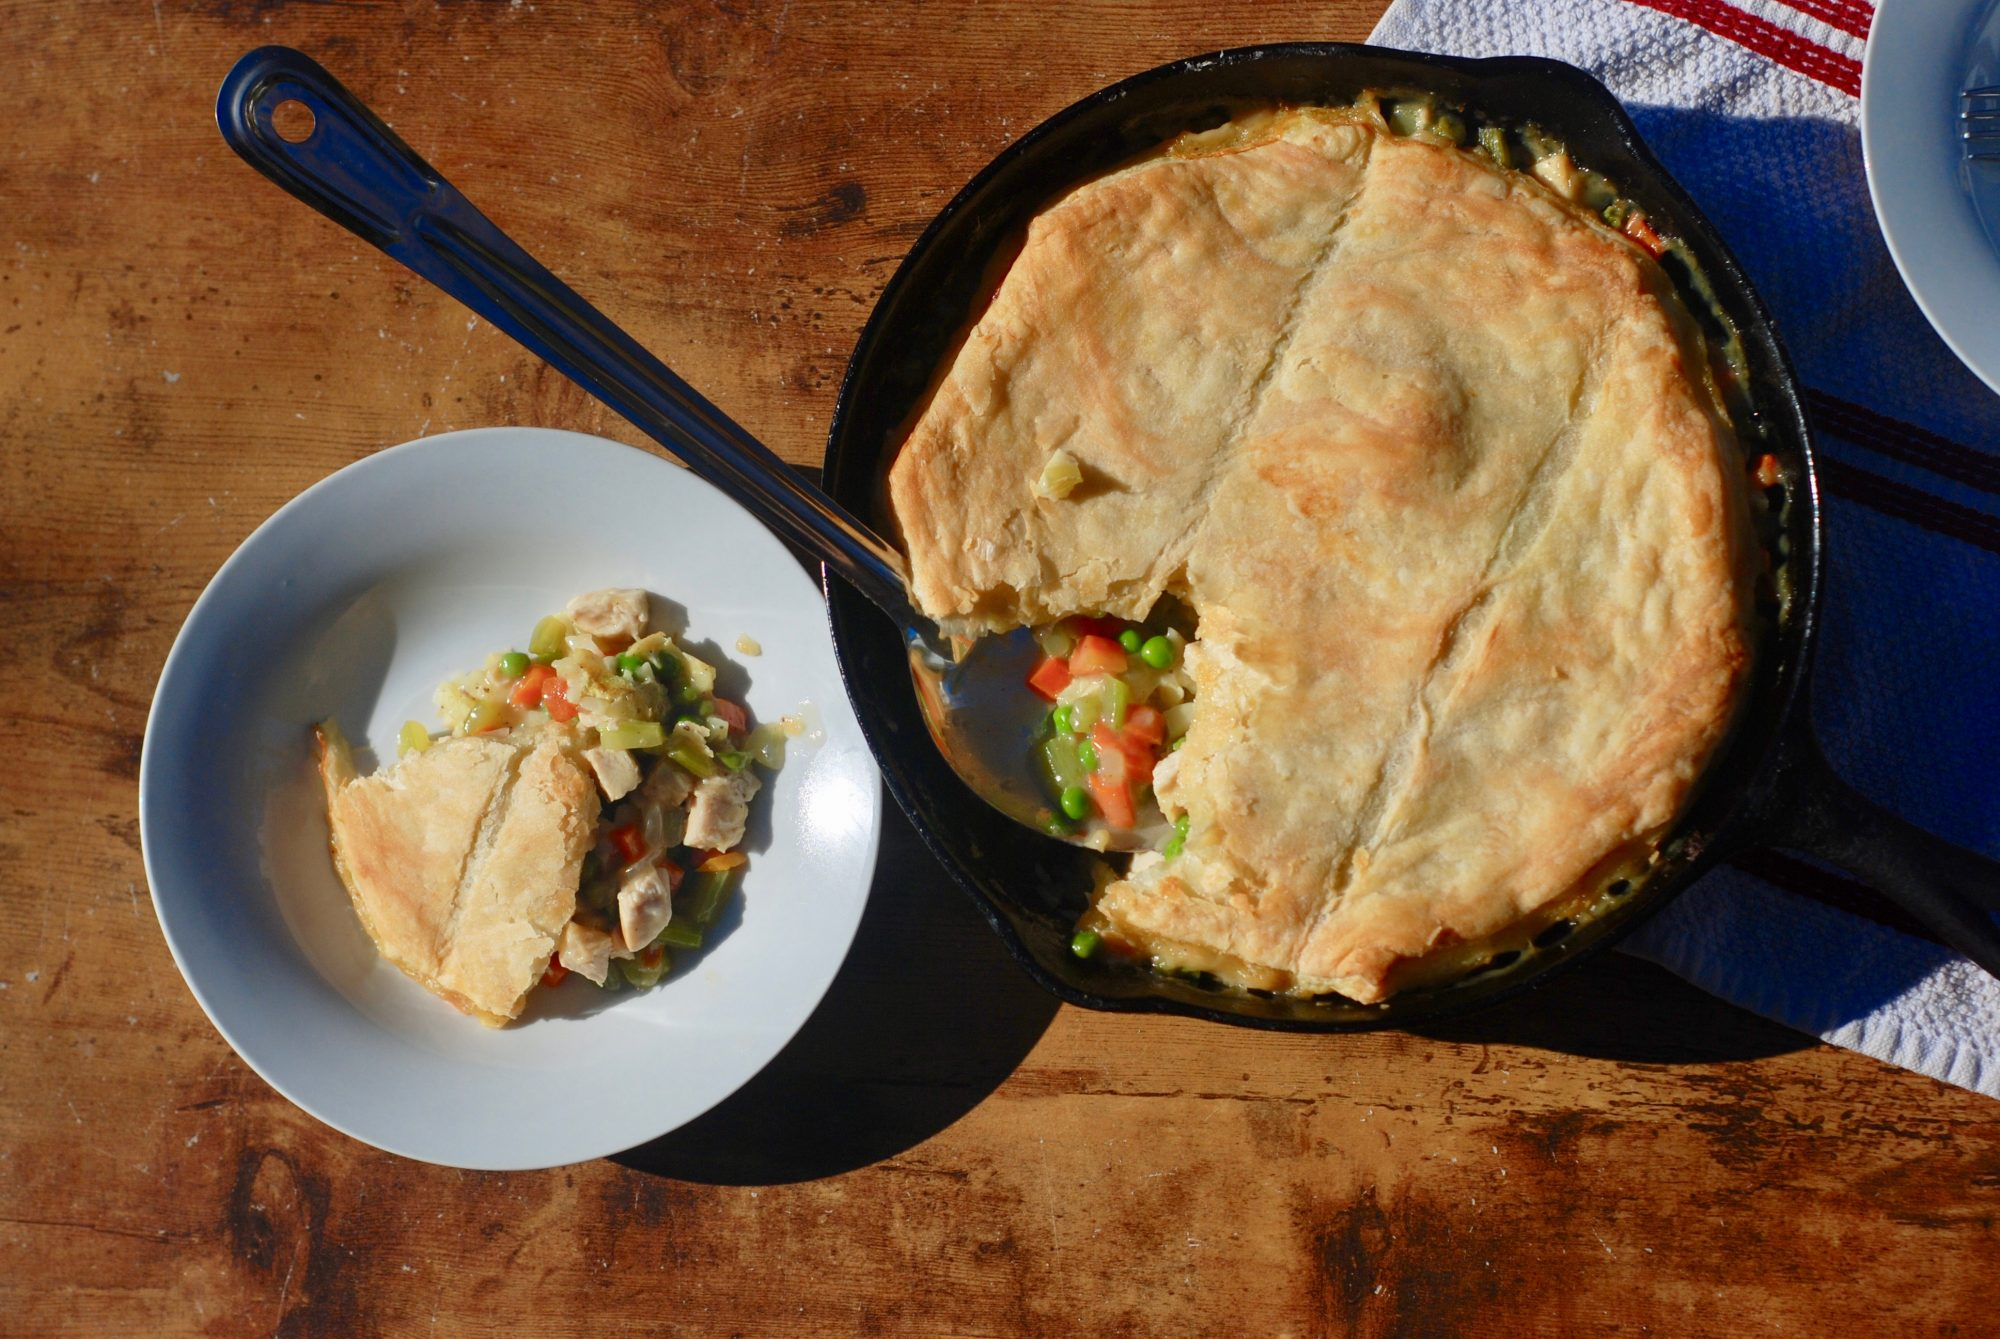 Reese Witherspoon's Chicken Pot Pie Casserole Recipe